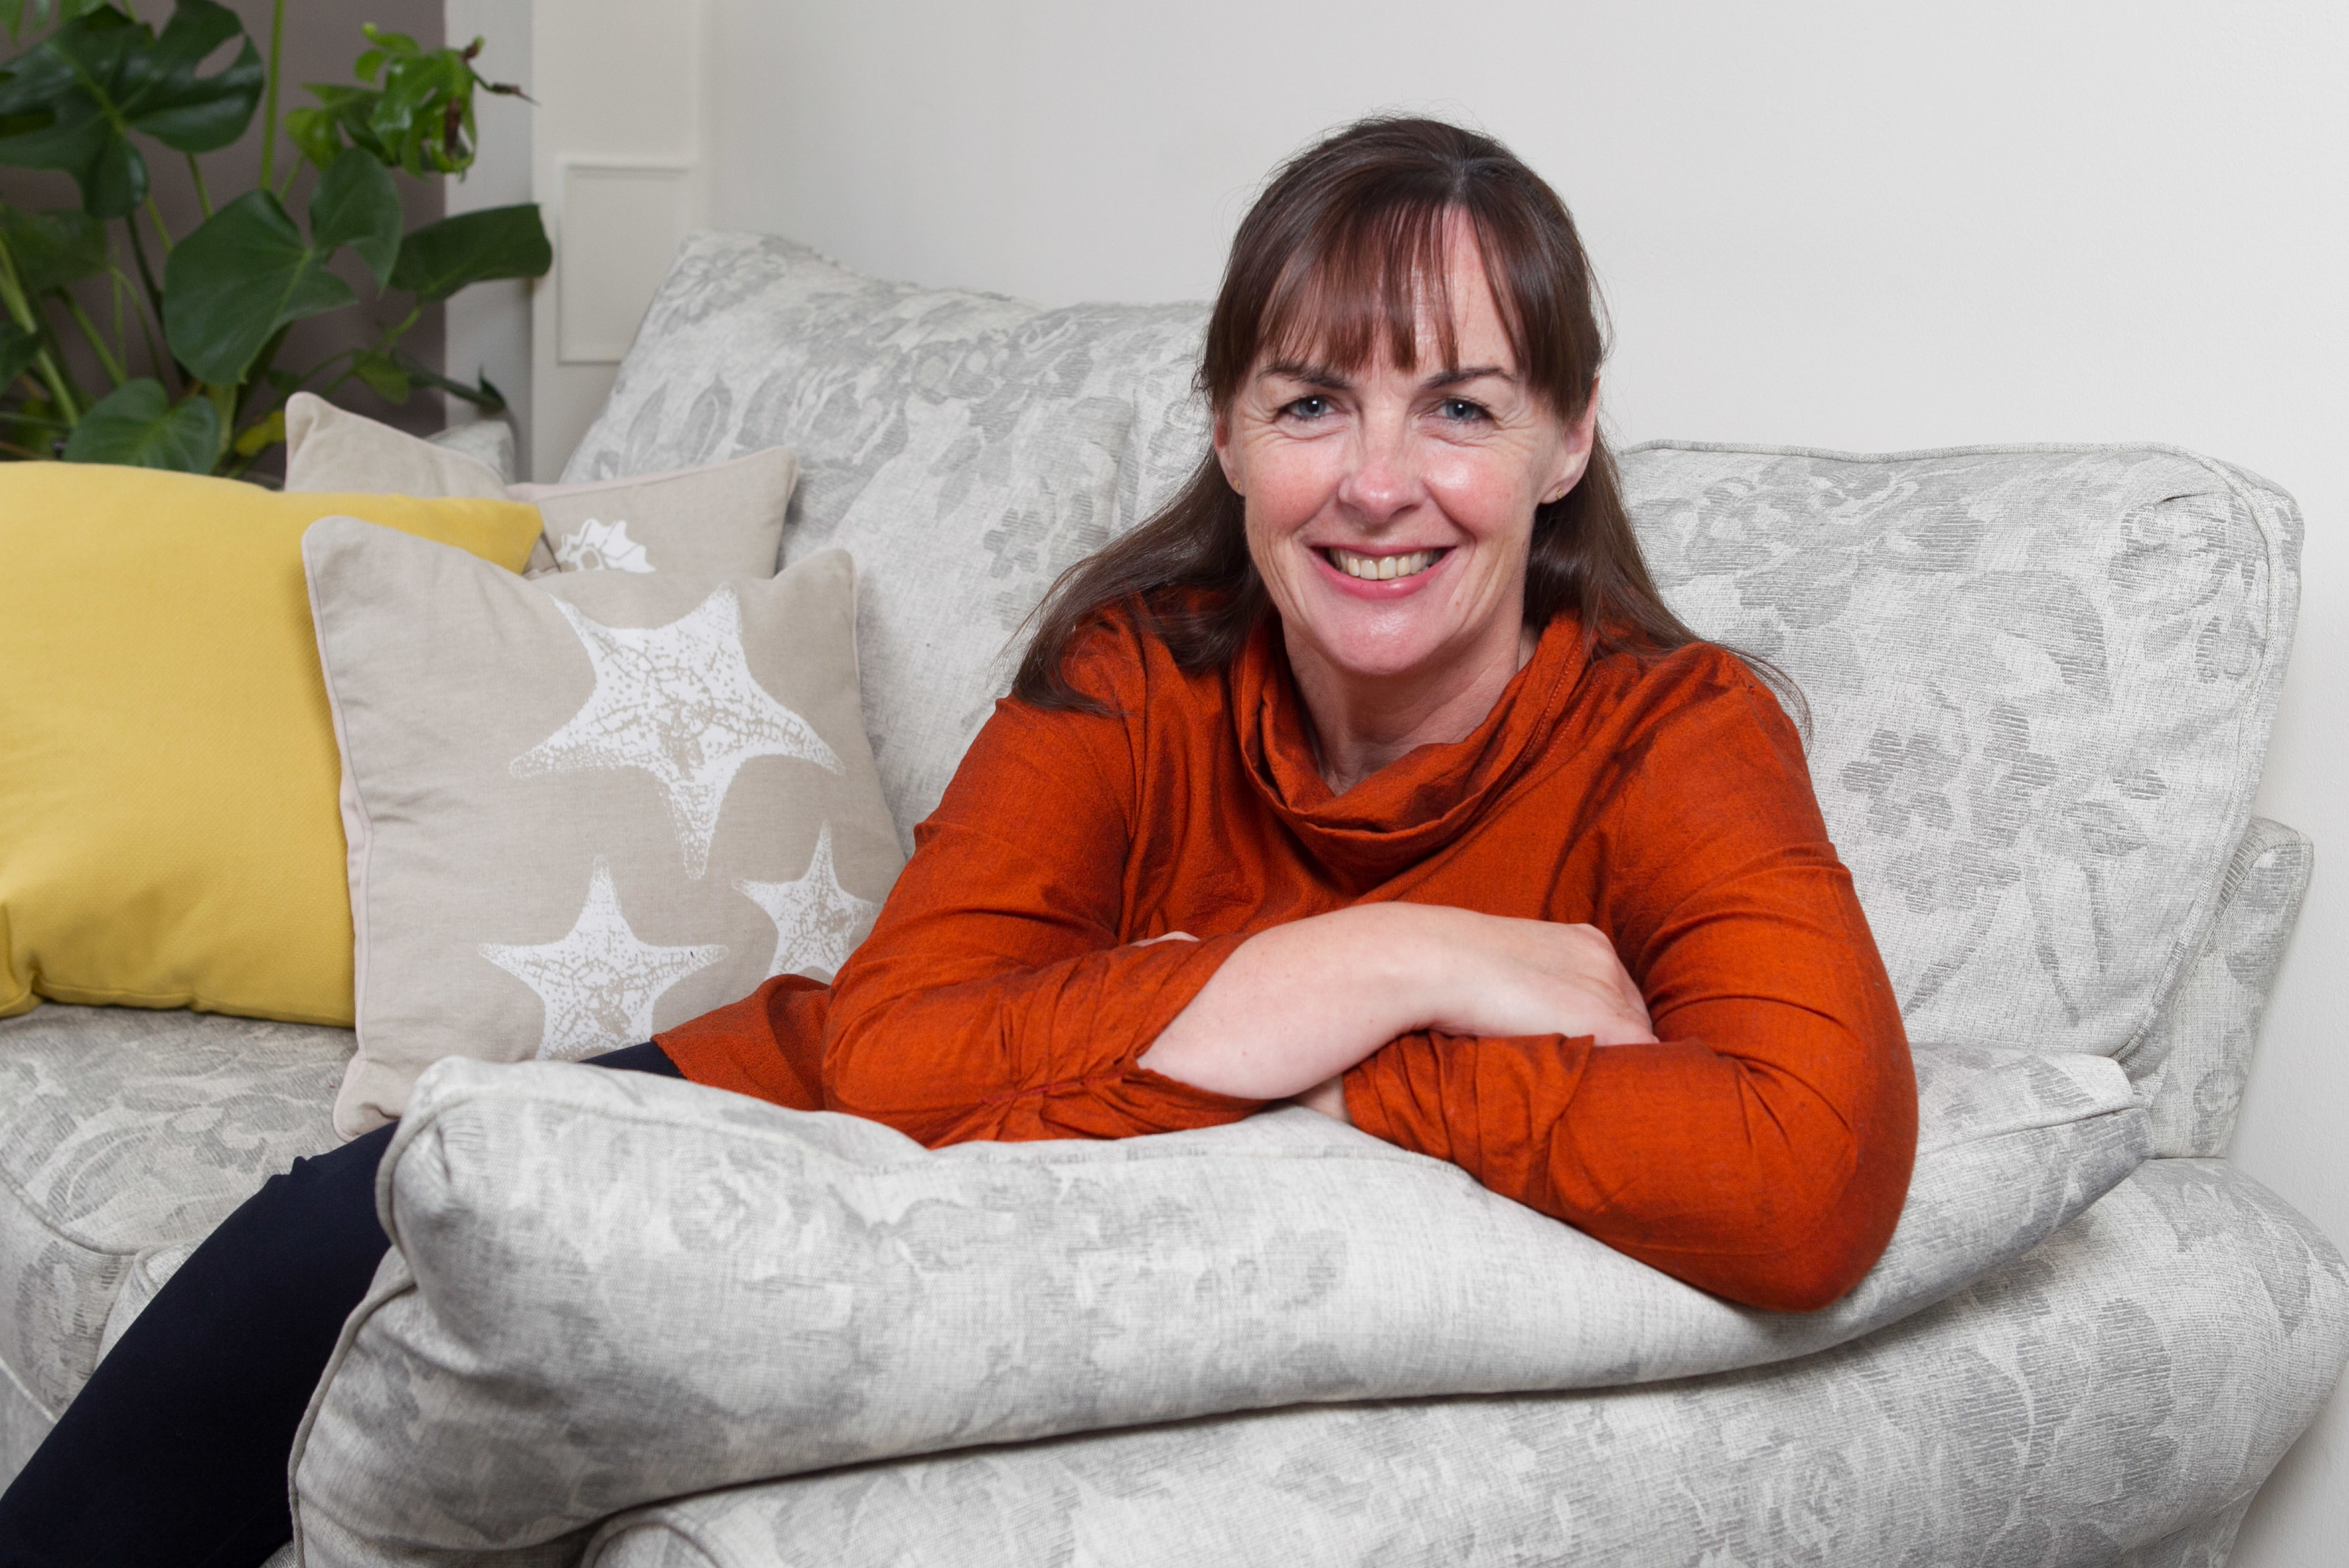 Hilary Peppiette is an end-of-life doula (Chris Austin / DC Thomson)